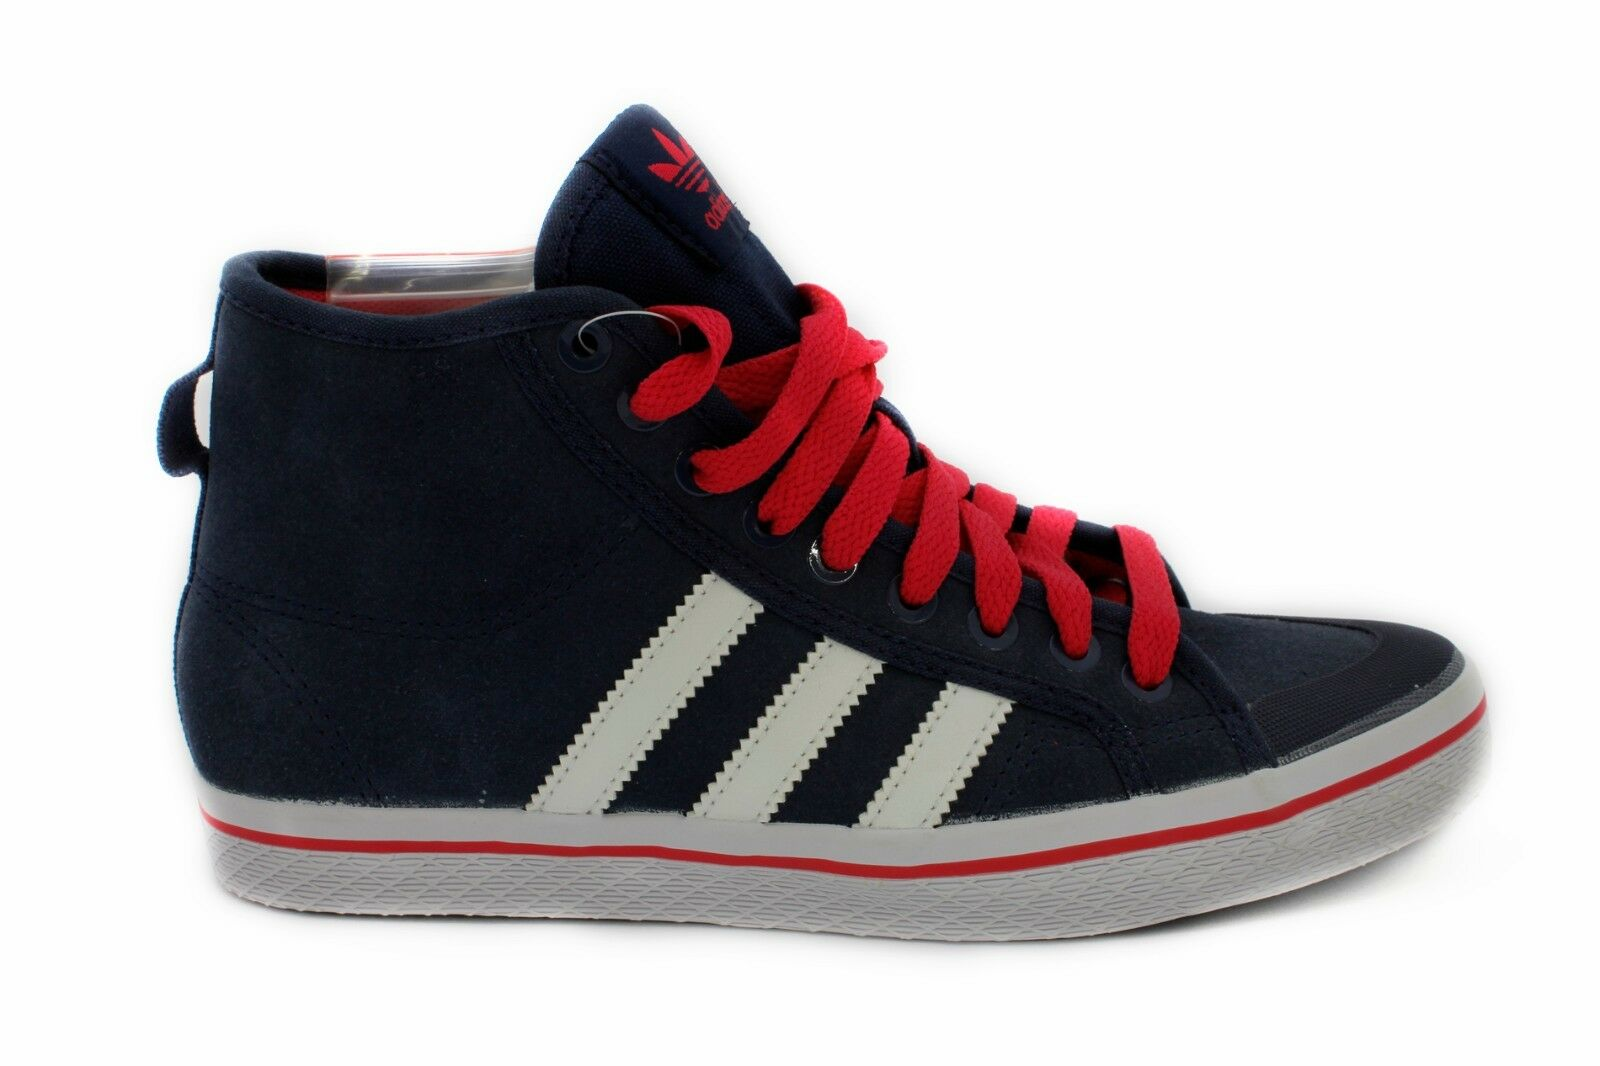 buy popular f5fe5 1c98d Scarpe E Alte it Adidas Prezzi Donna Confronta Offerte Dealsan TqtAw